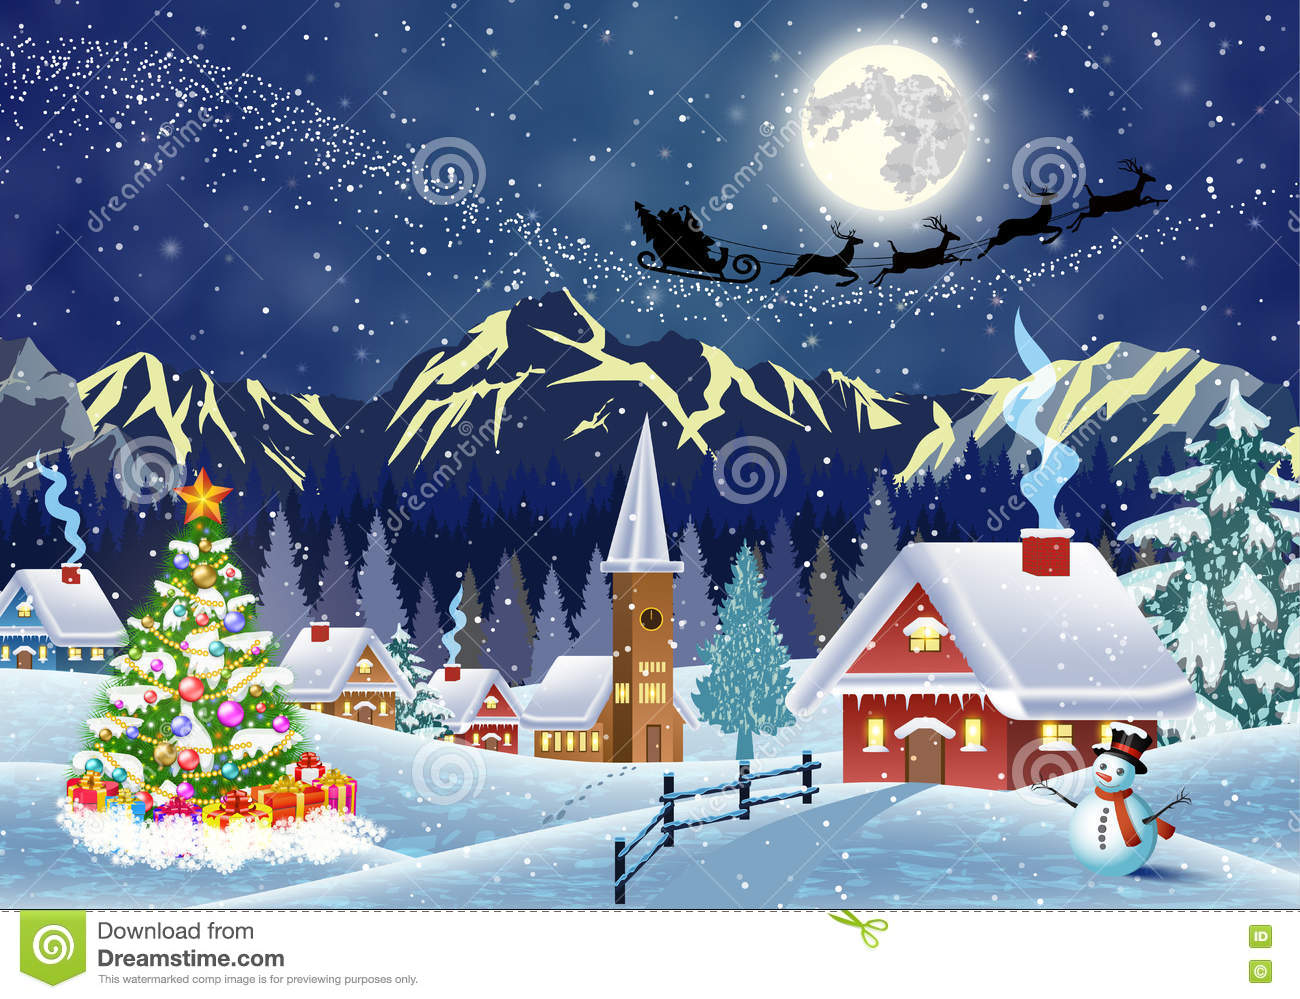 3d Snowy Cottage Animated Wallpaper Free Download House In Snowy Christmas Landscape At Night Stock Vector